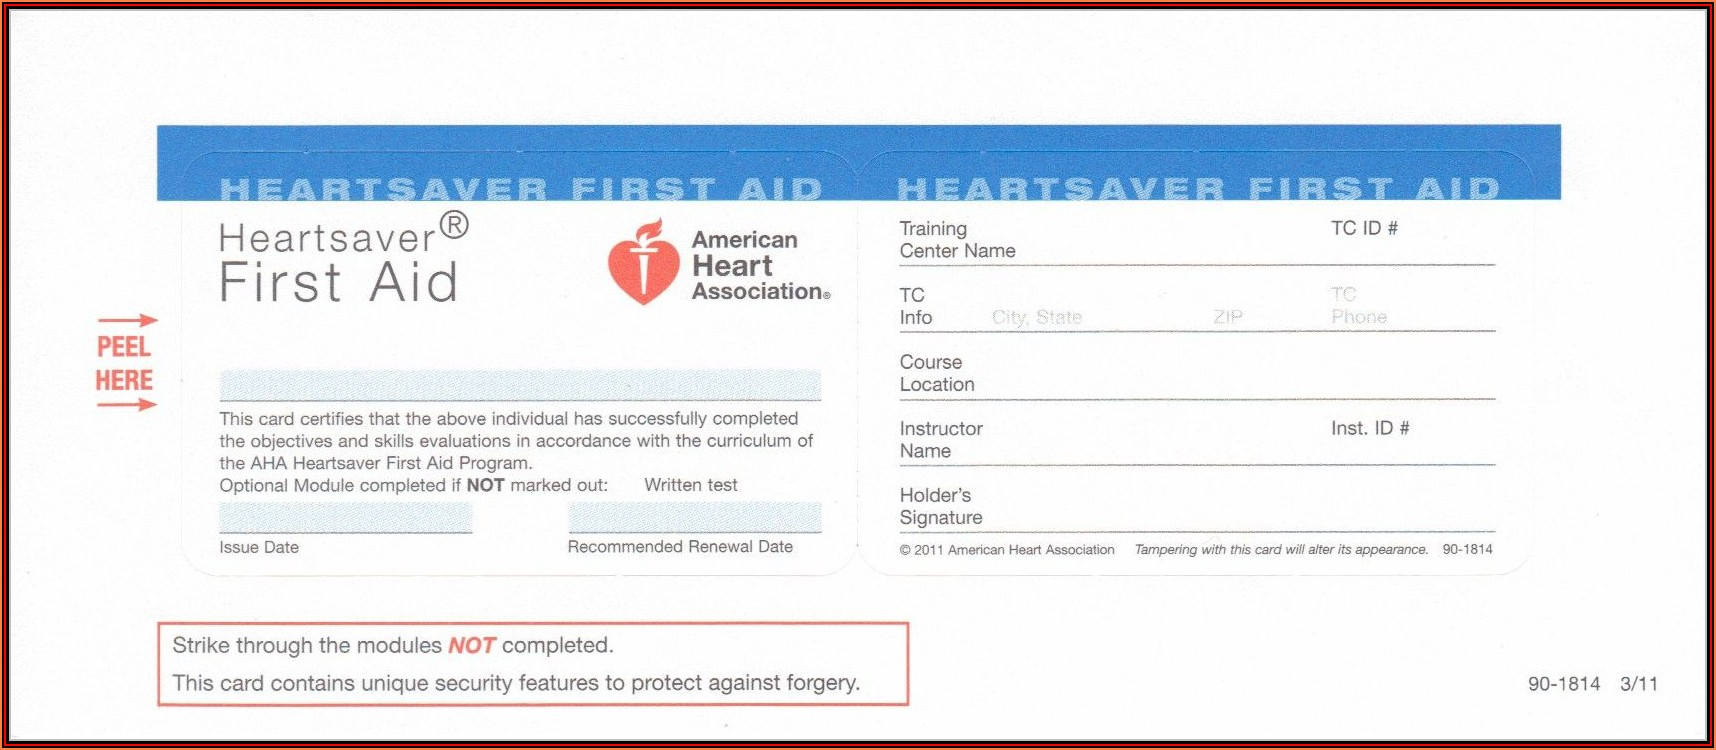 American Heart Association Cpr Card Printing Template